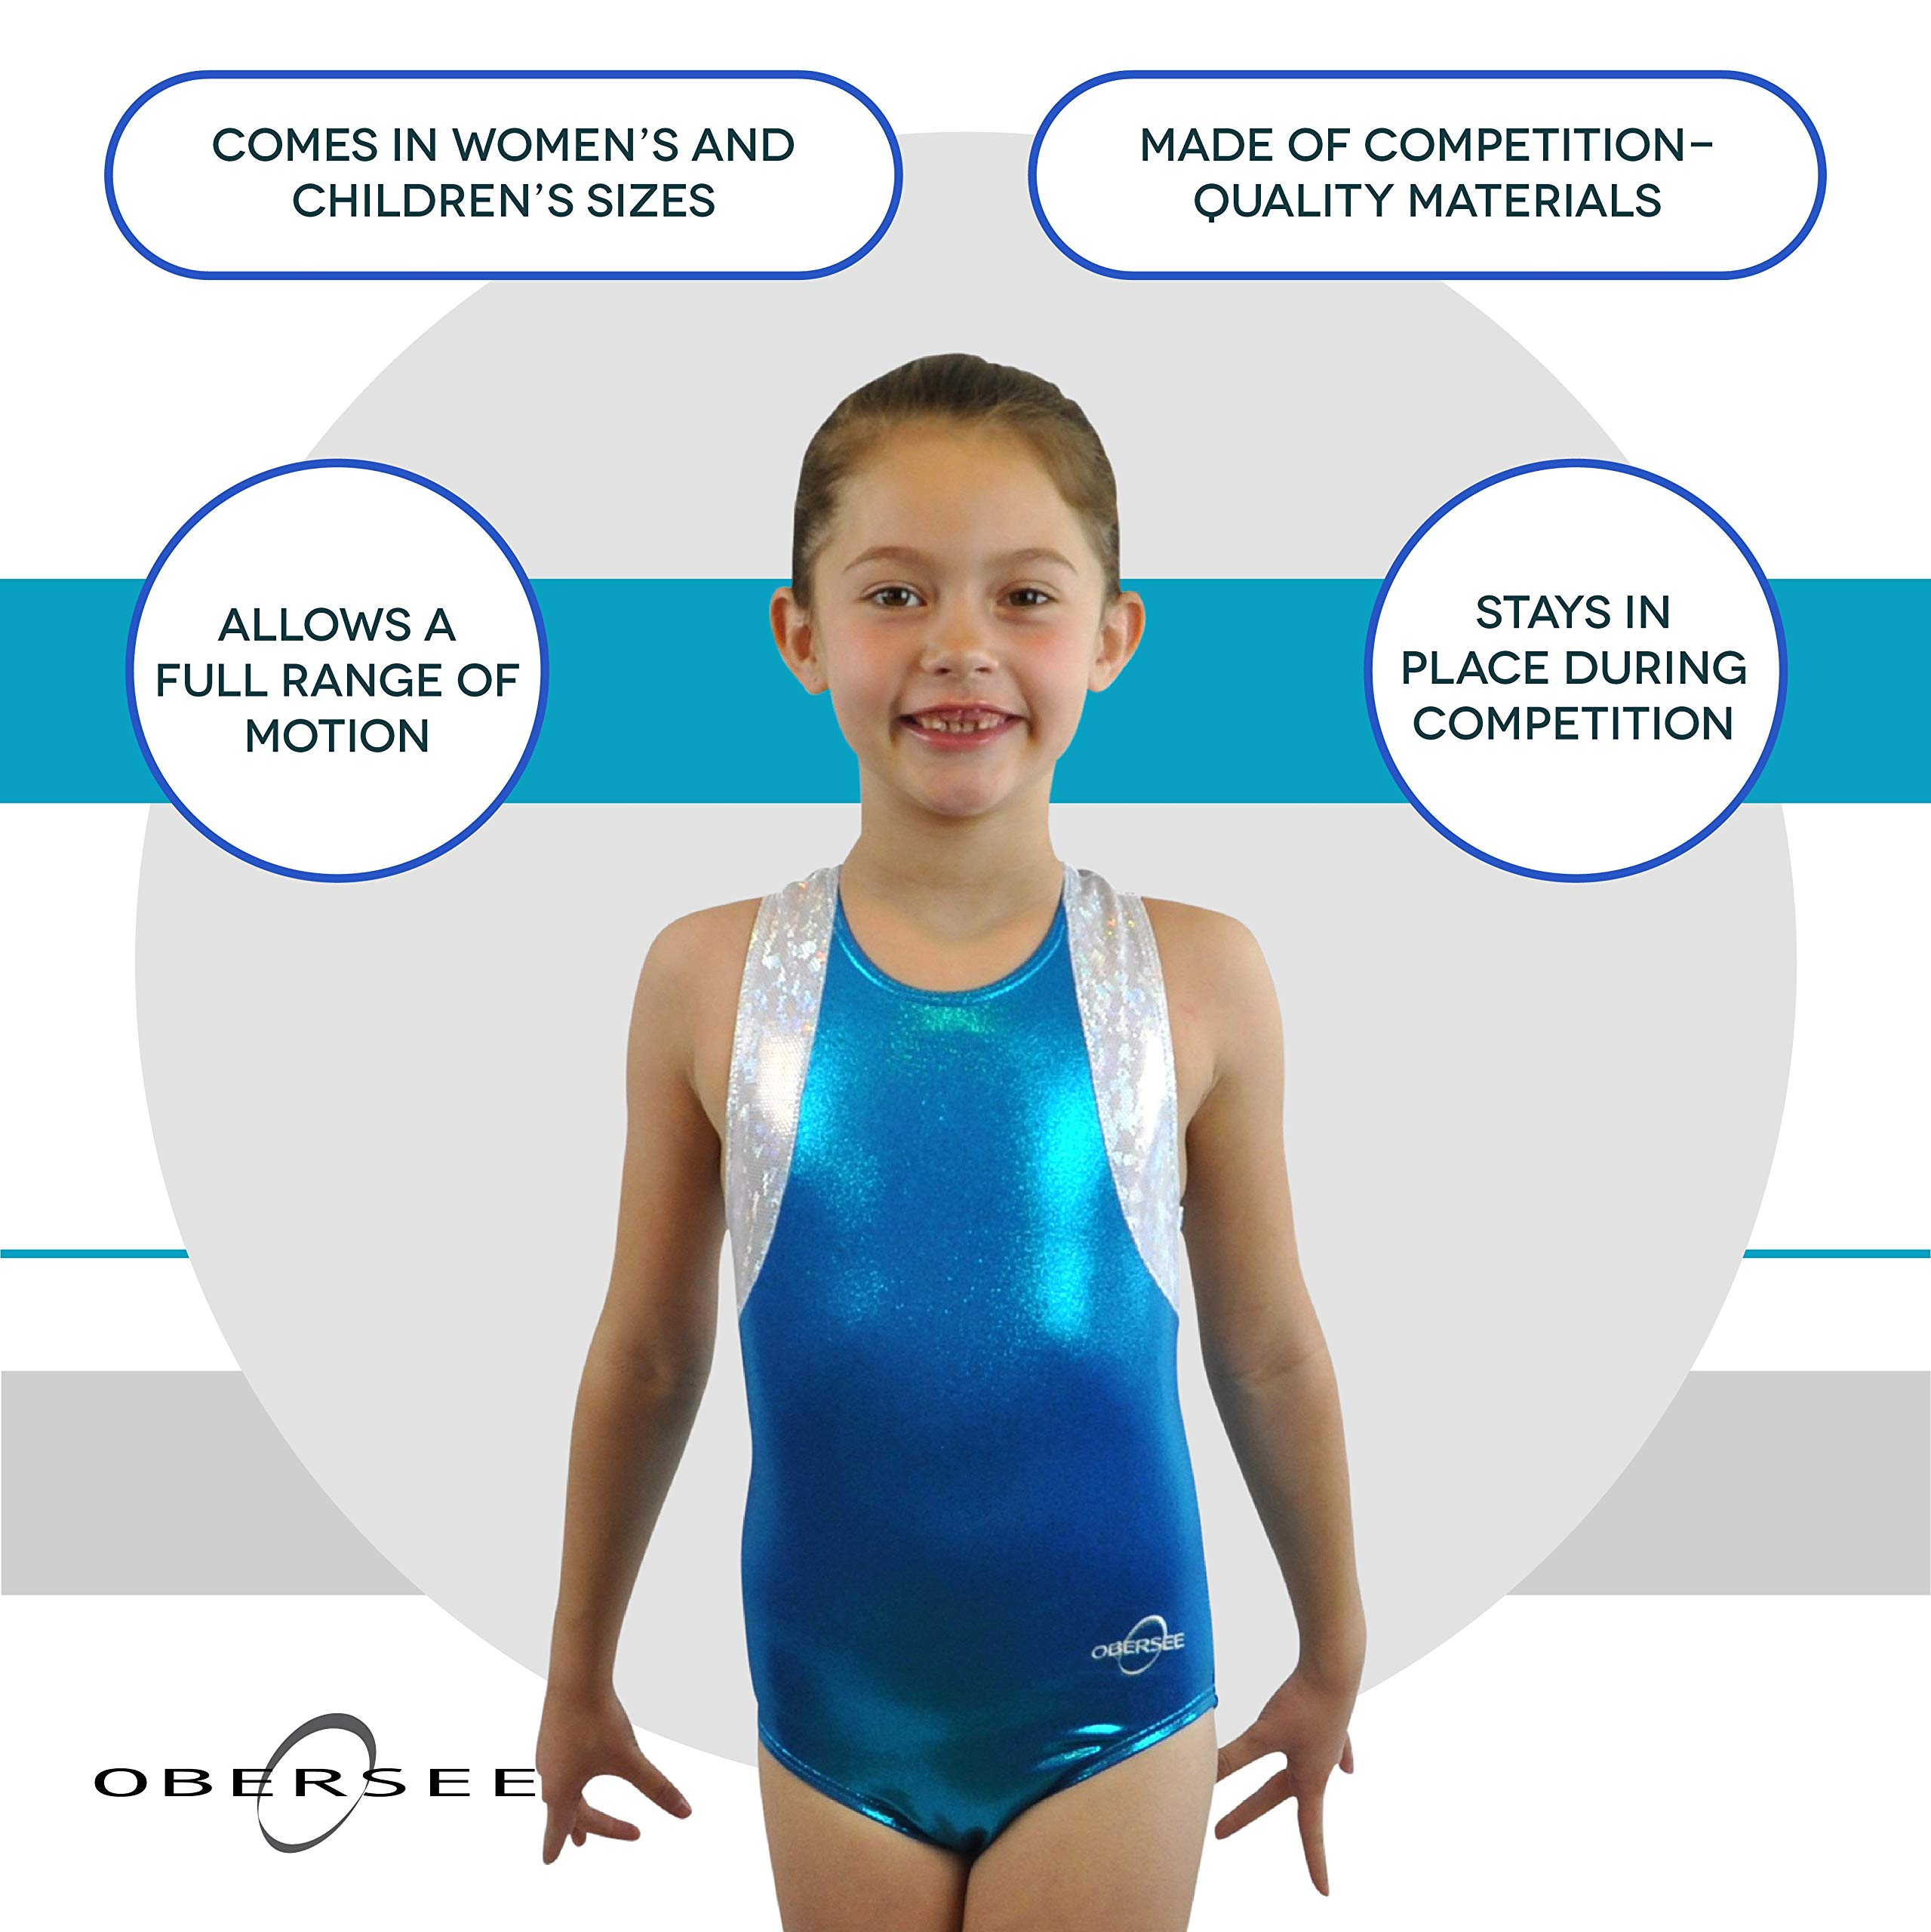 Obersee Girl's Girls Gymnastics Leotard, Cross Back Turquoise, AM by Obersee